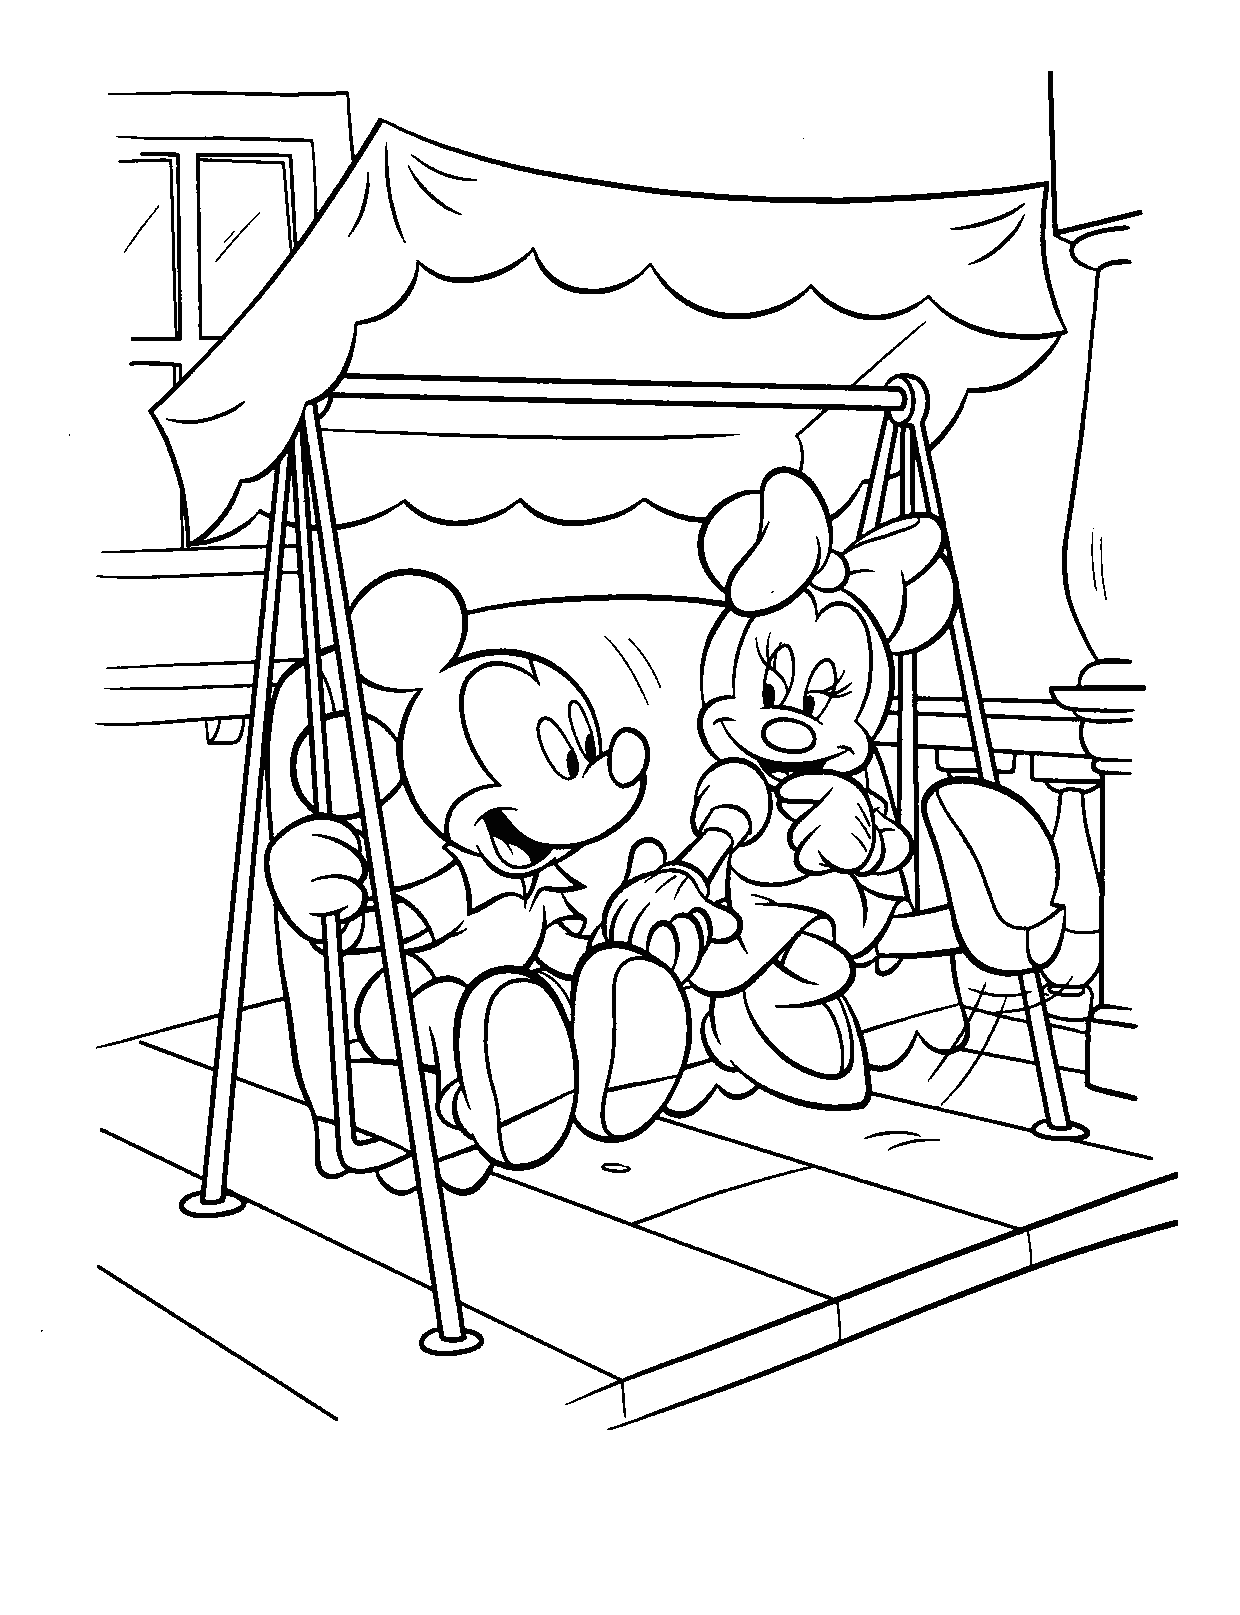 colouring pages of mickey mouse and minnie free printable minnie mouse coloring pages for kids mouse mickey pages minnie colouring and of